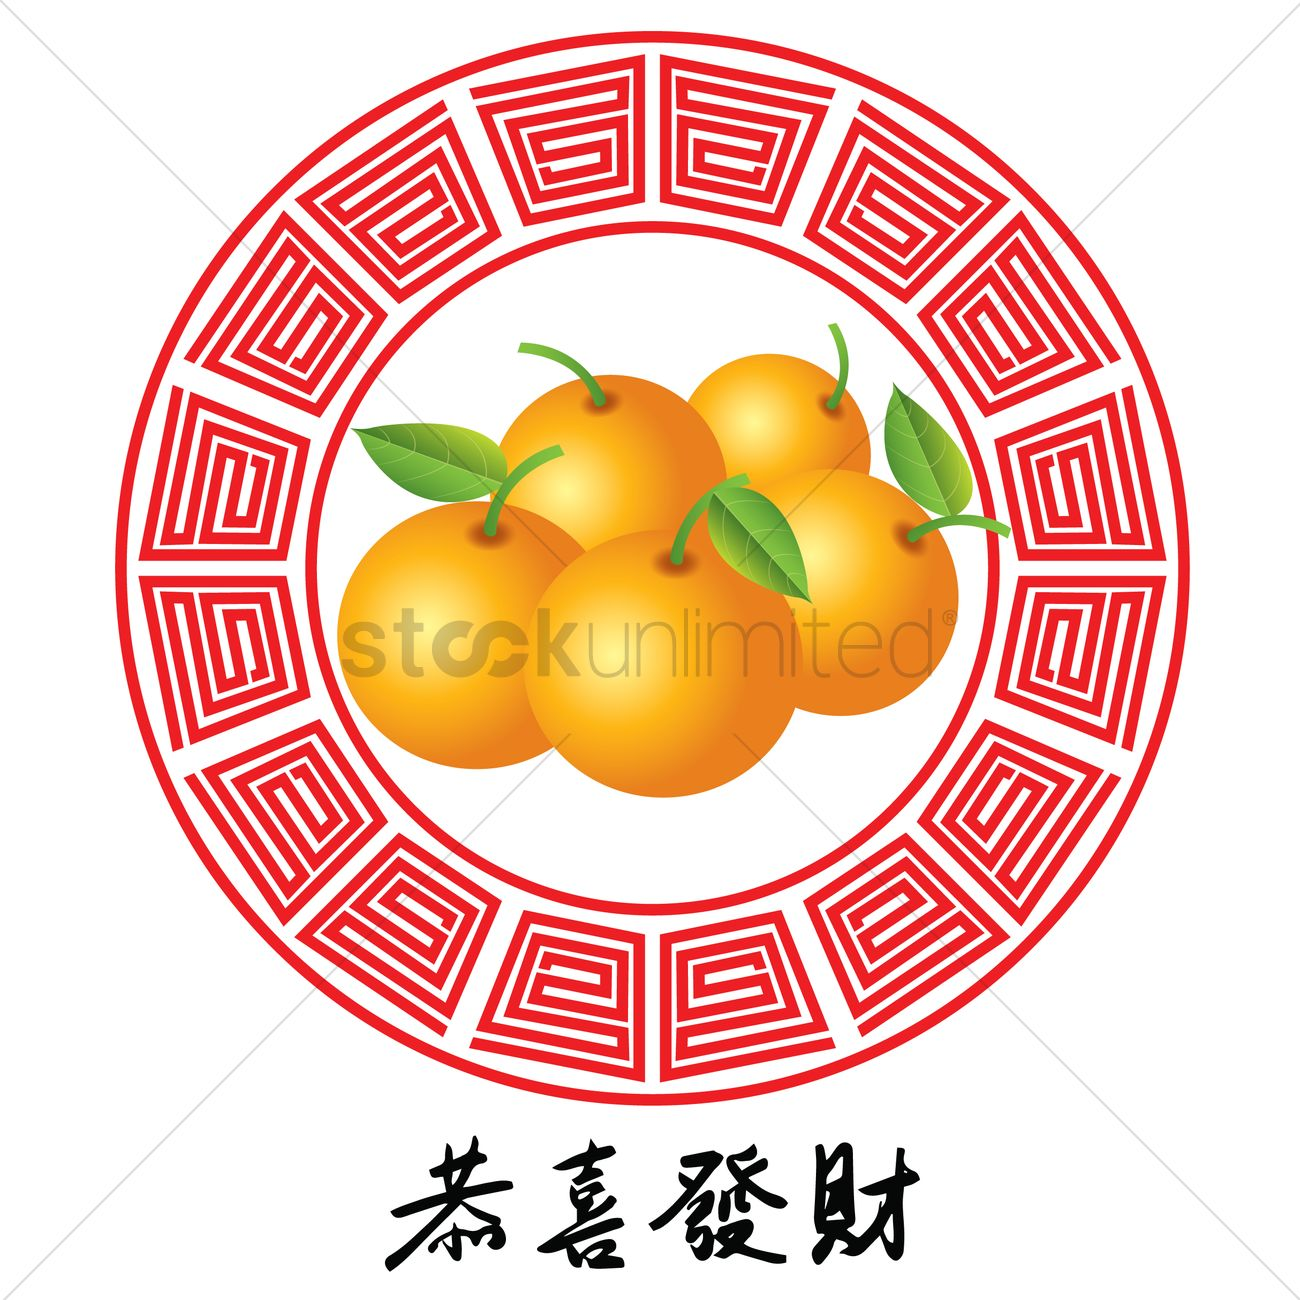 Chinese new year greetings vector image 1411254 stockunlimited chinese new year greetings vector graphic m4hsunfo